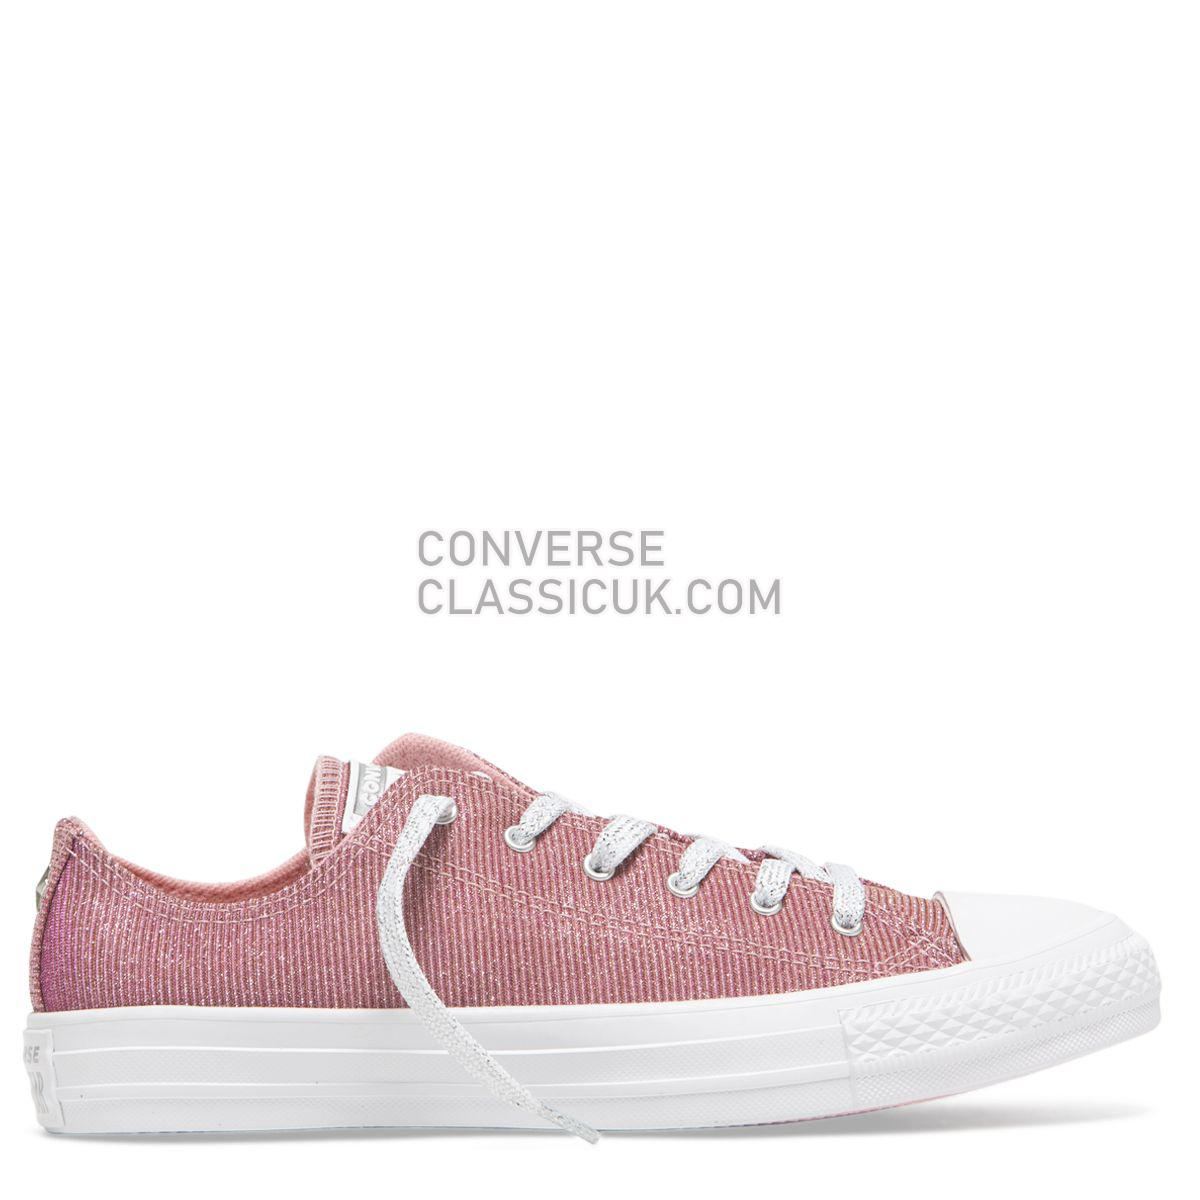 Converse Chuck Taylor All Star Starware Low Top Coastal Pink Womens 564915 Coastal Pink/Light Rouge/Pure Silver Shoes